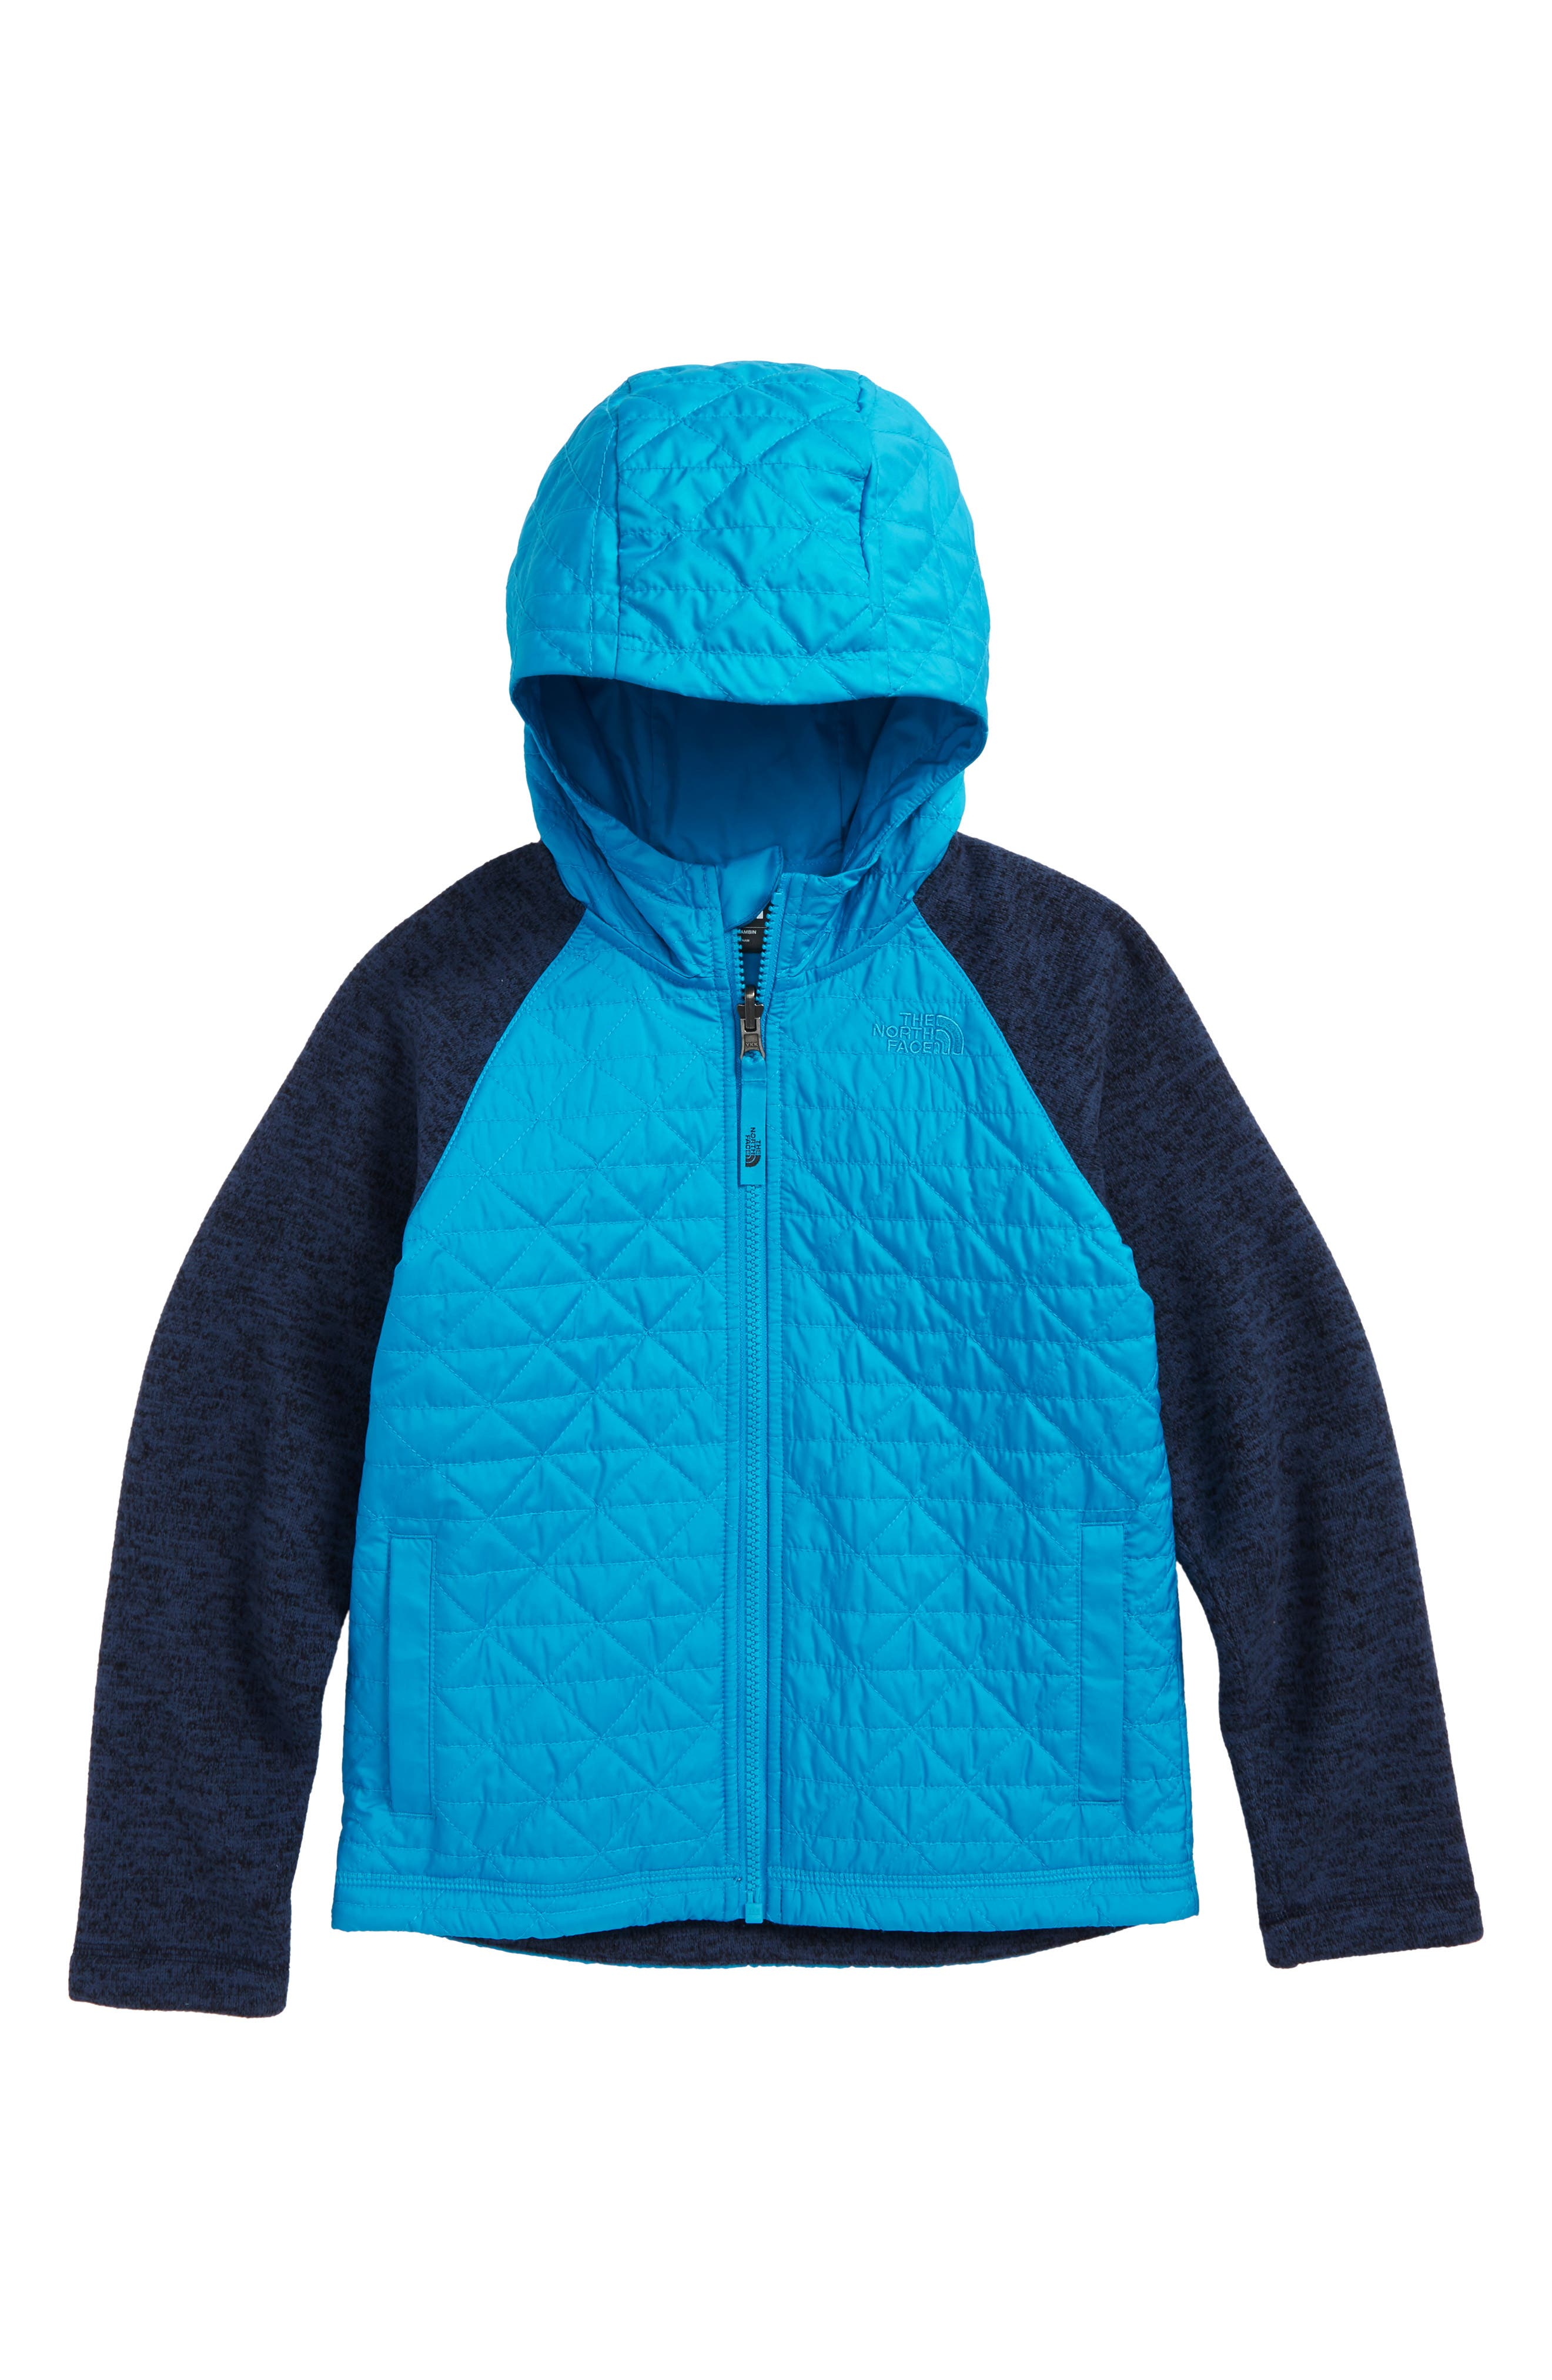 Water Repellent Quilted Sweater Fleece Jacket,                             Main thumbnail 1, color,                             COSMIC BLUE/ HYPER BLUE